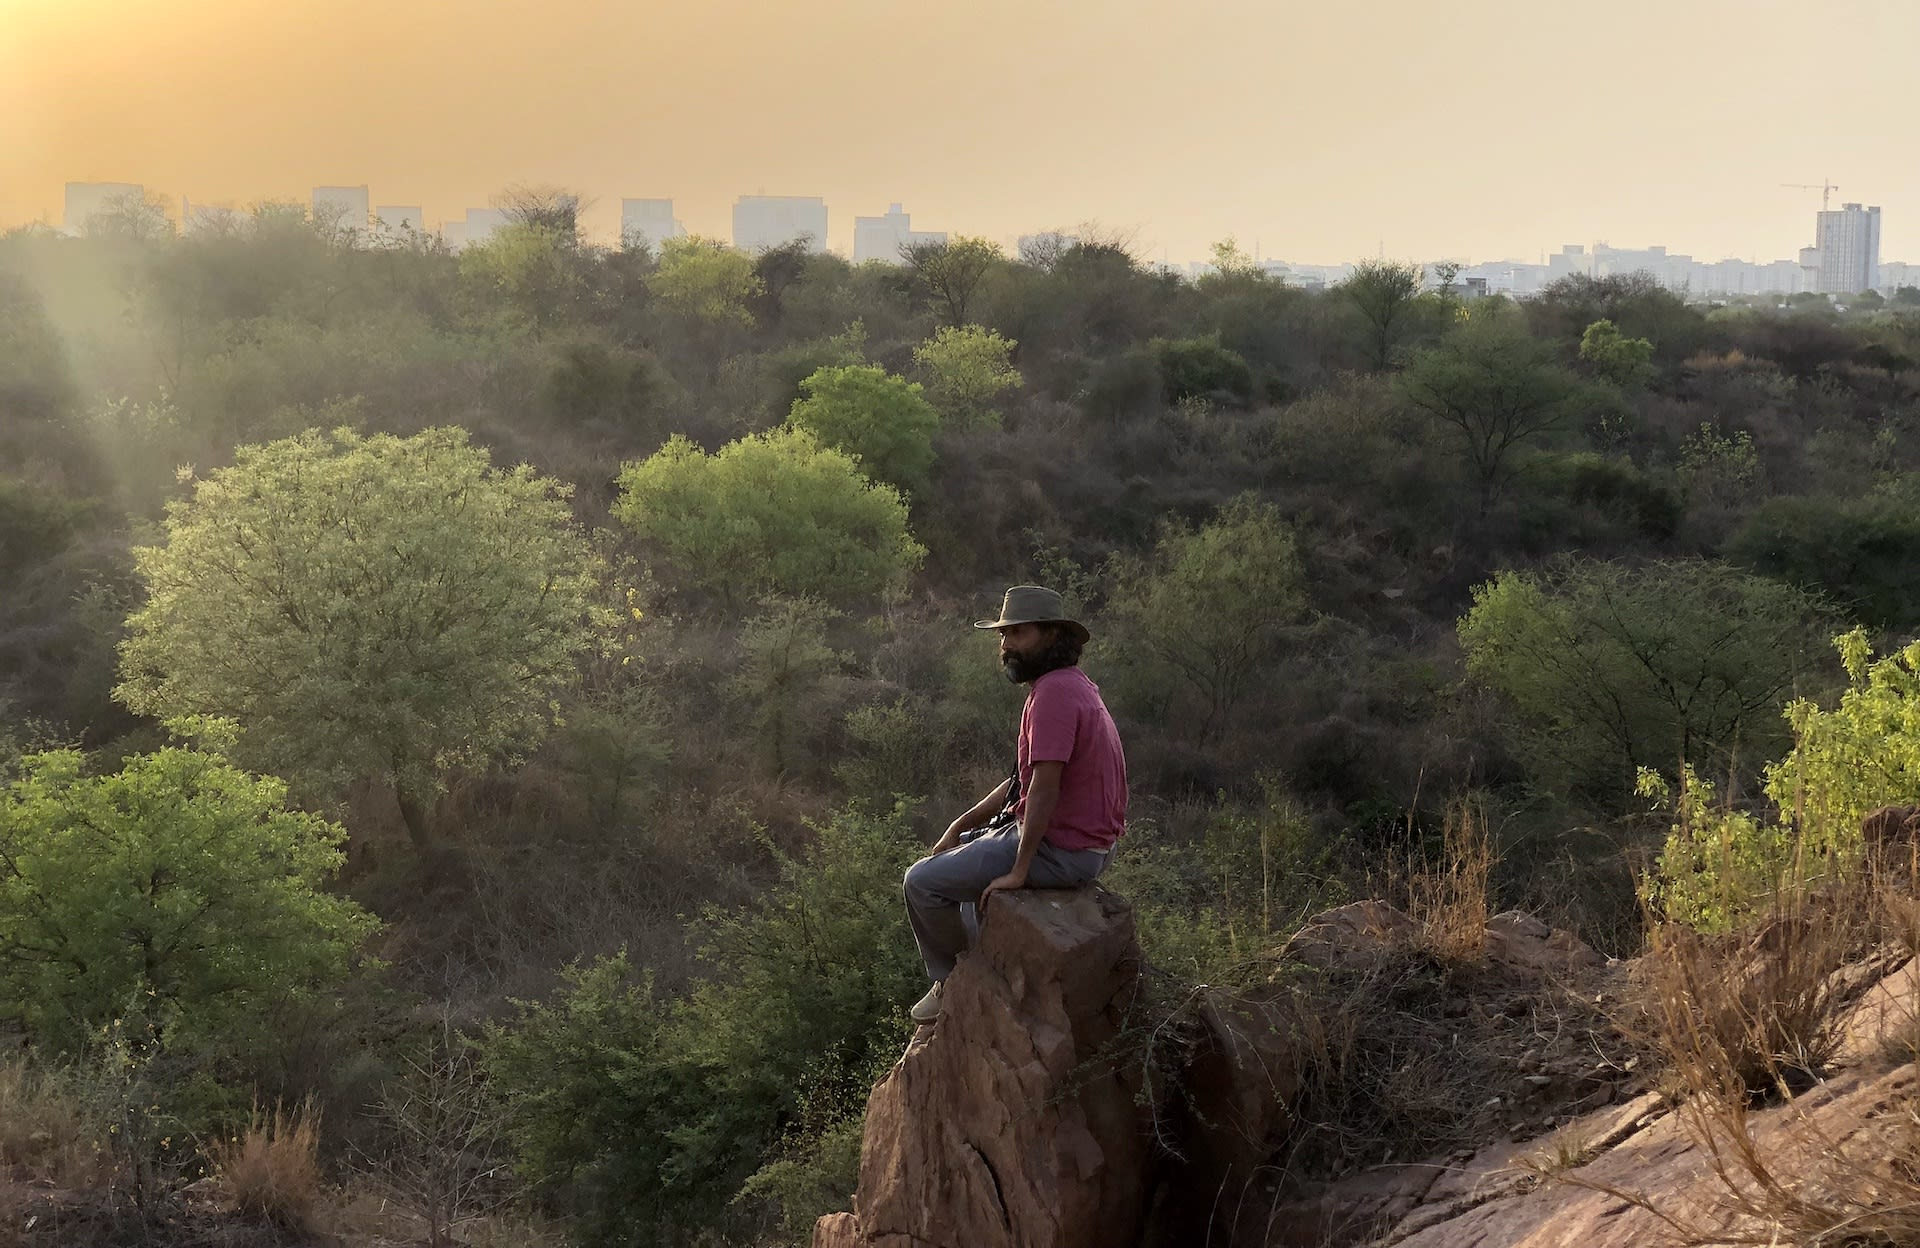 A large part of Dhasmana's work in the past 15 years has focused on restoring degraded landscapes of the Aravallis, the world's oldest fold mountain range.